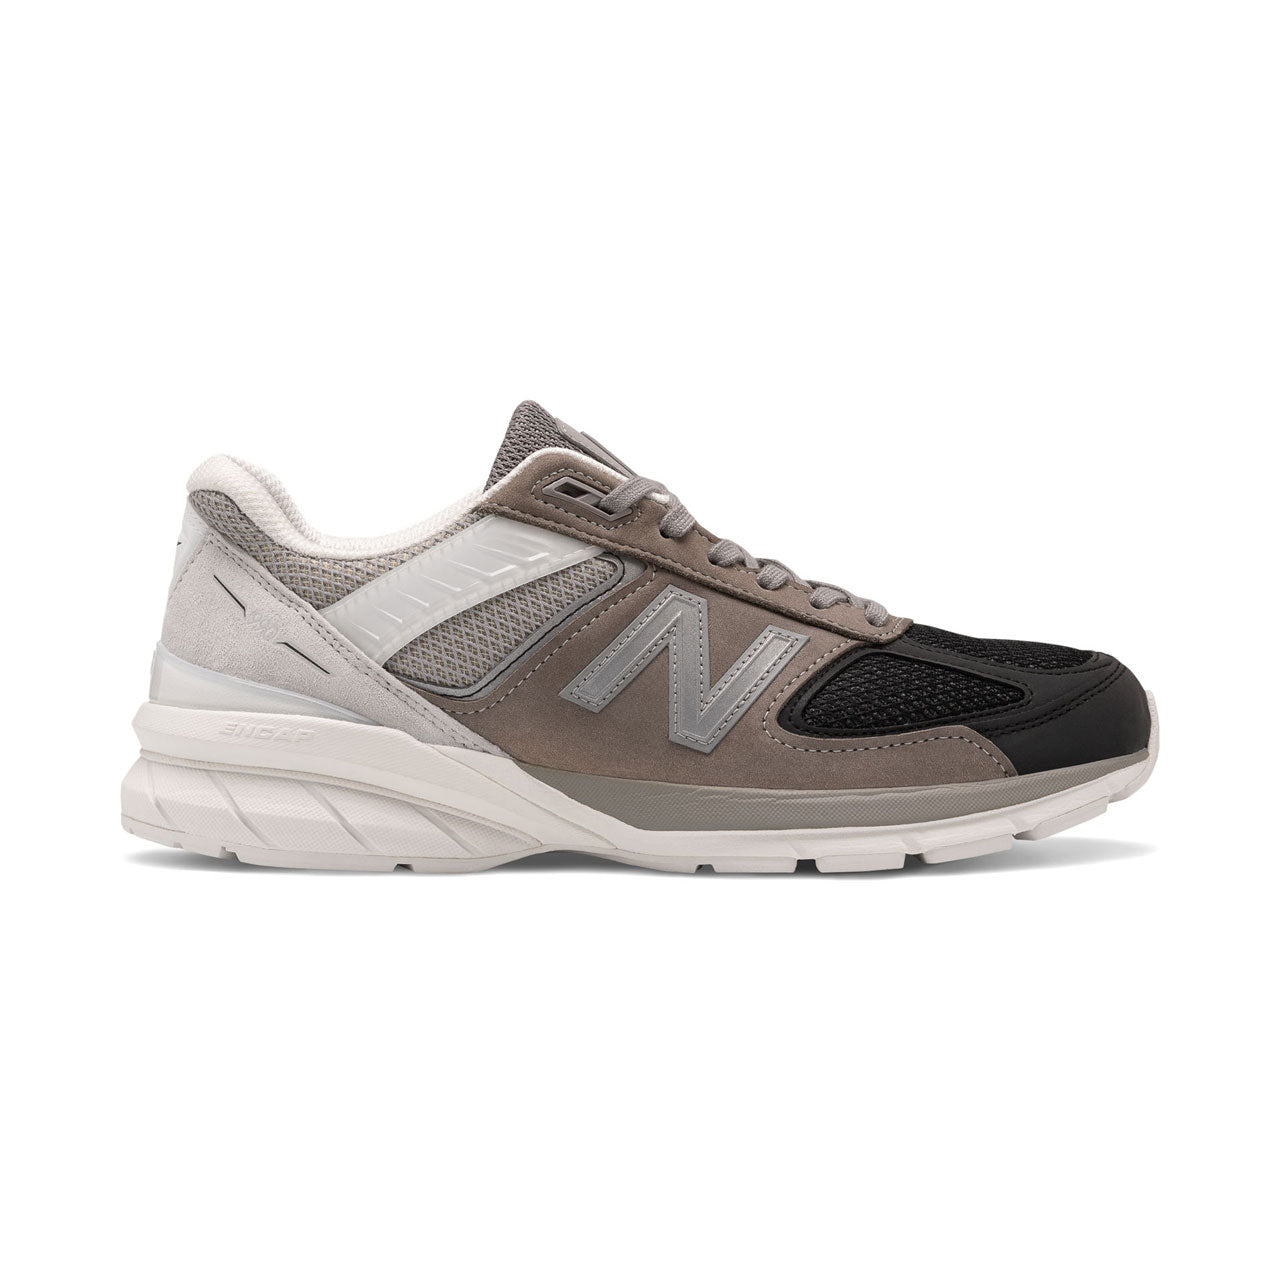 New Balance 990v5 Made in USA Sneaker